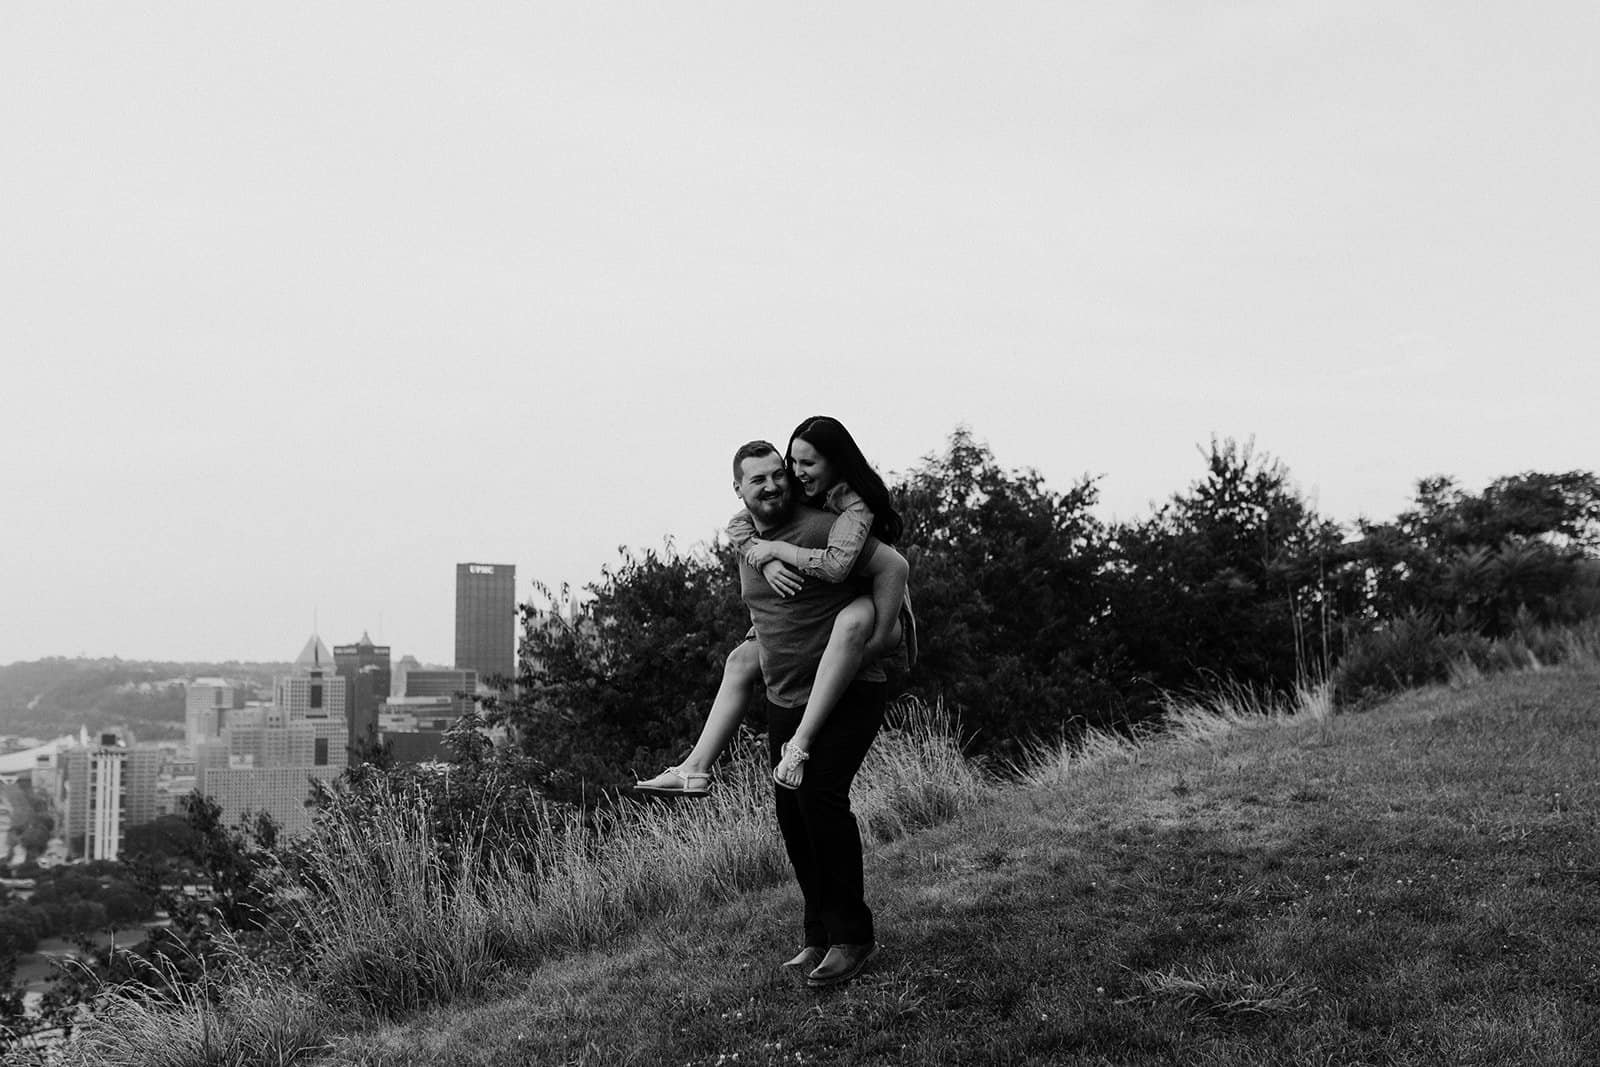 Piggy back ride on Mount Washington hillside in Pittsburgh